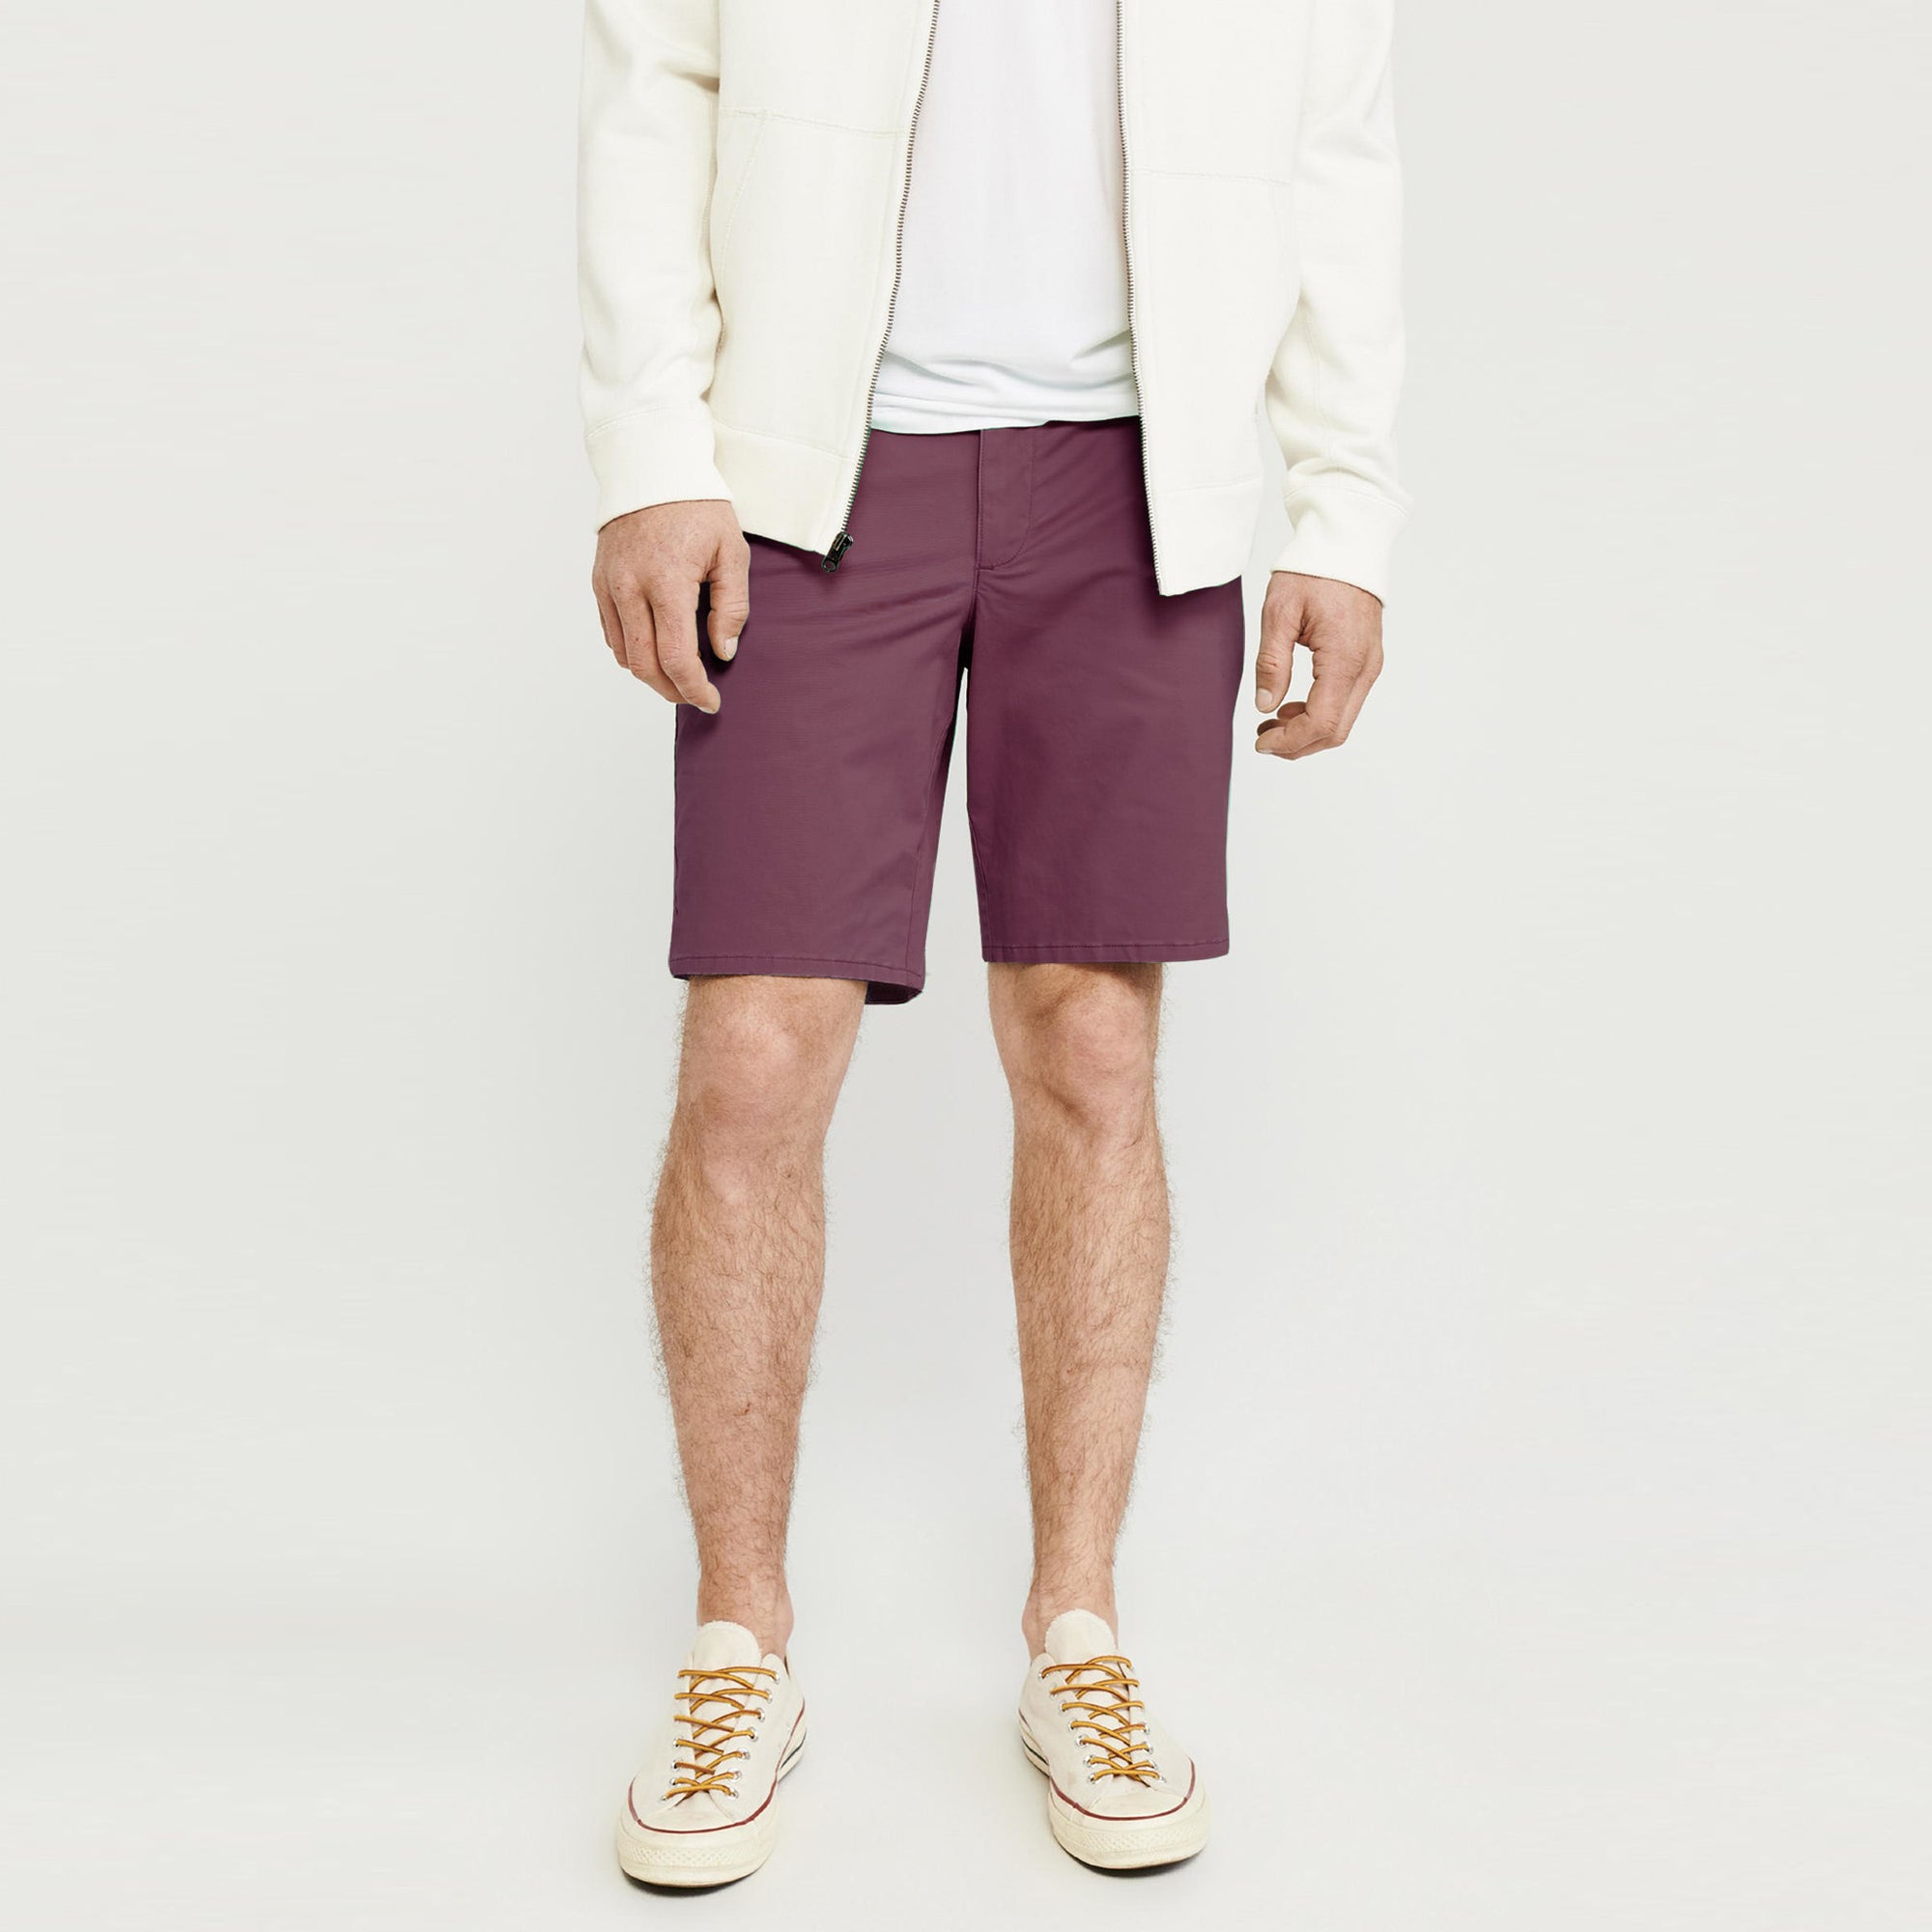 Next Cotton Denim Short For Men-Light Maroon-BE7984